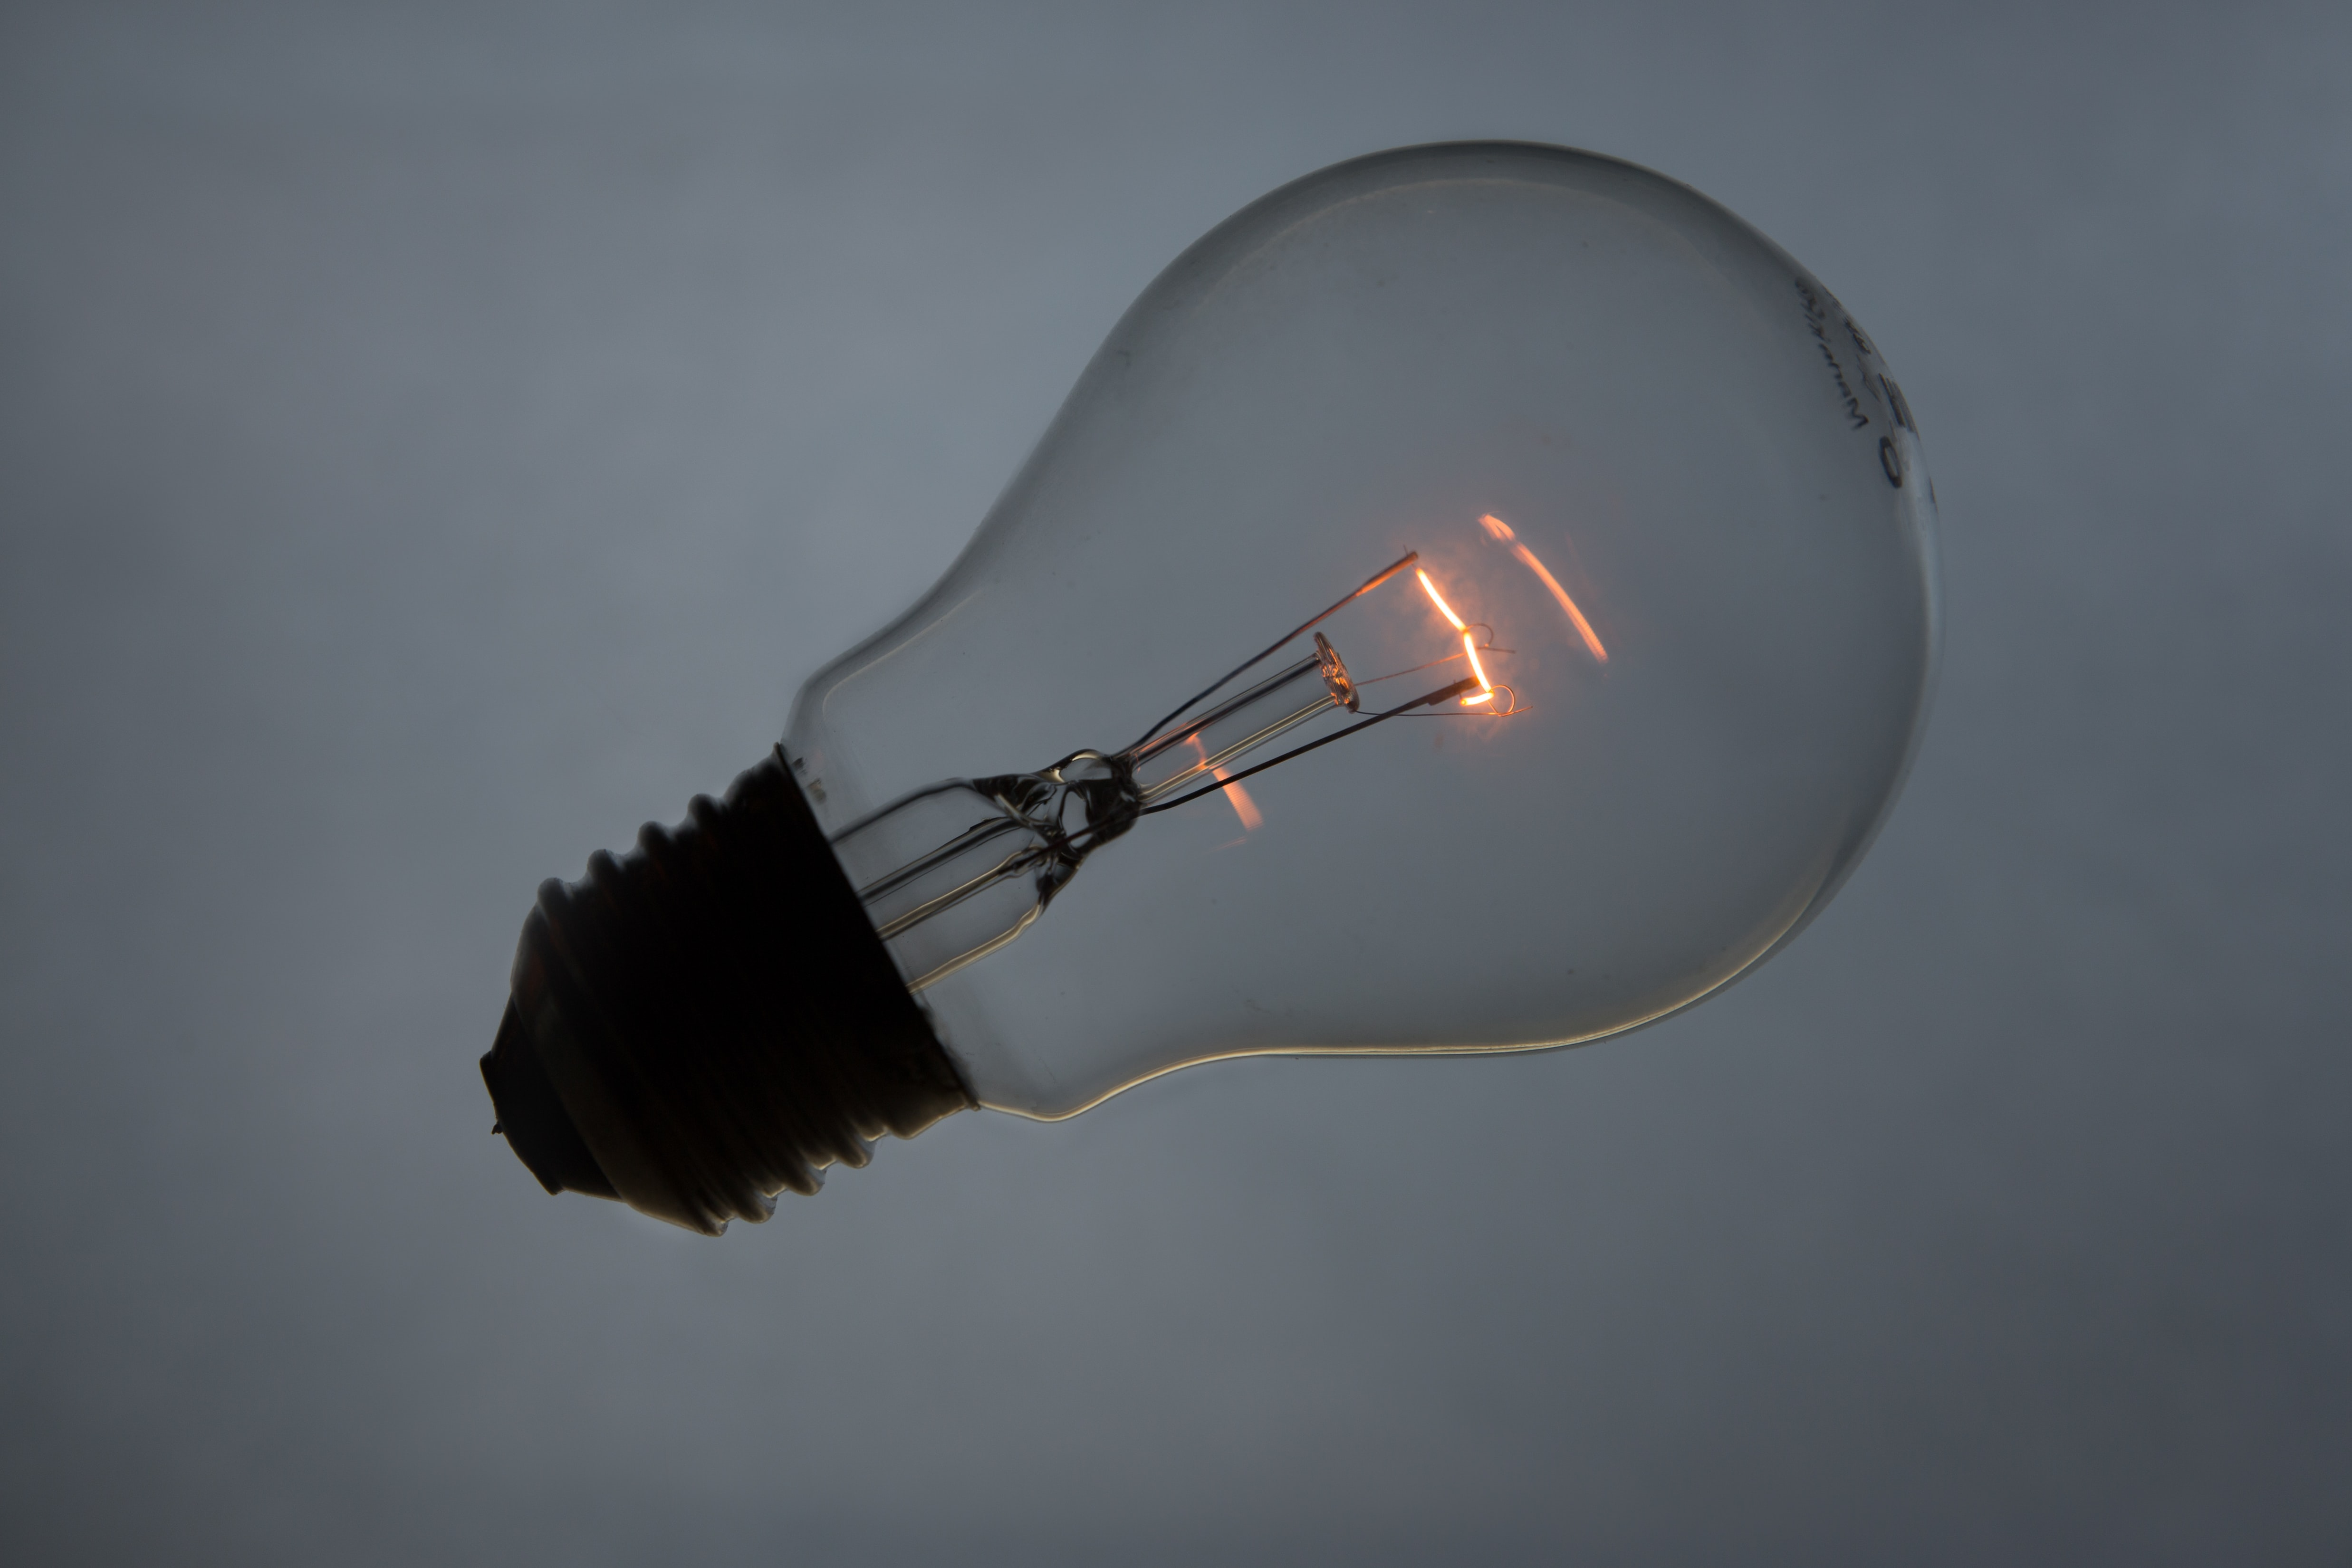 Wireless light bulb with glowing filament inside